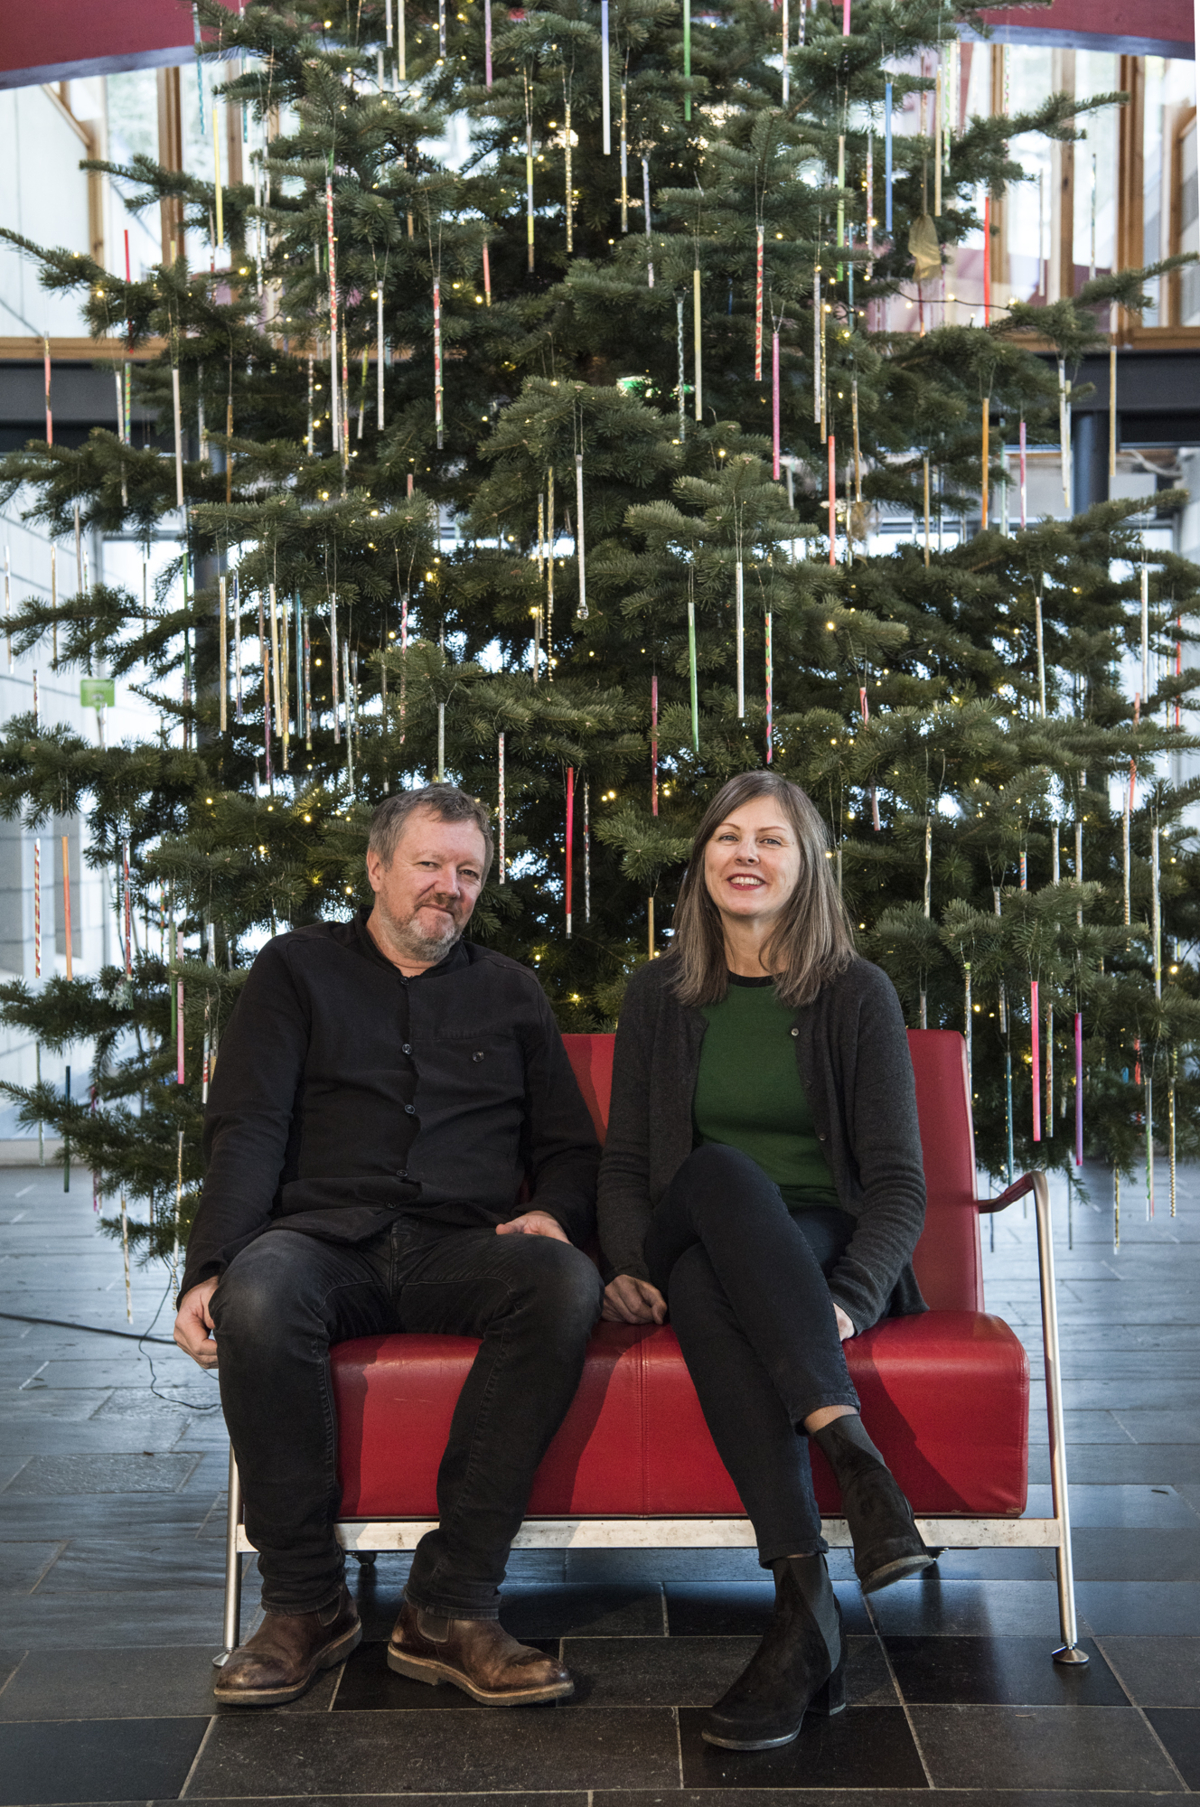 Kjetil Trædahl Thorsen and Jorunn Sannes from Snøhetta i a red chair in front of a decorated Christmas tree.